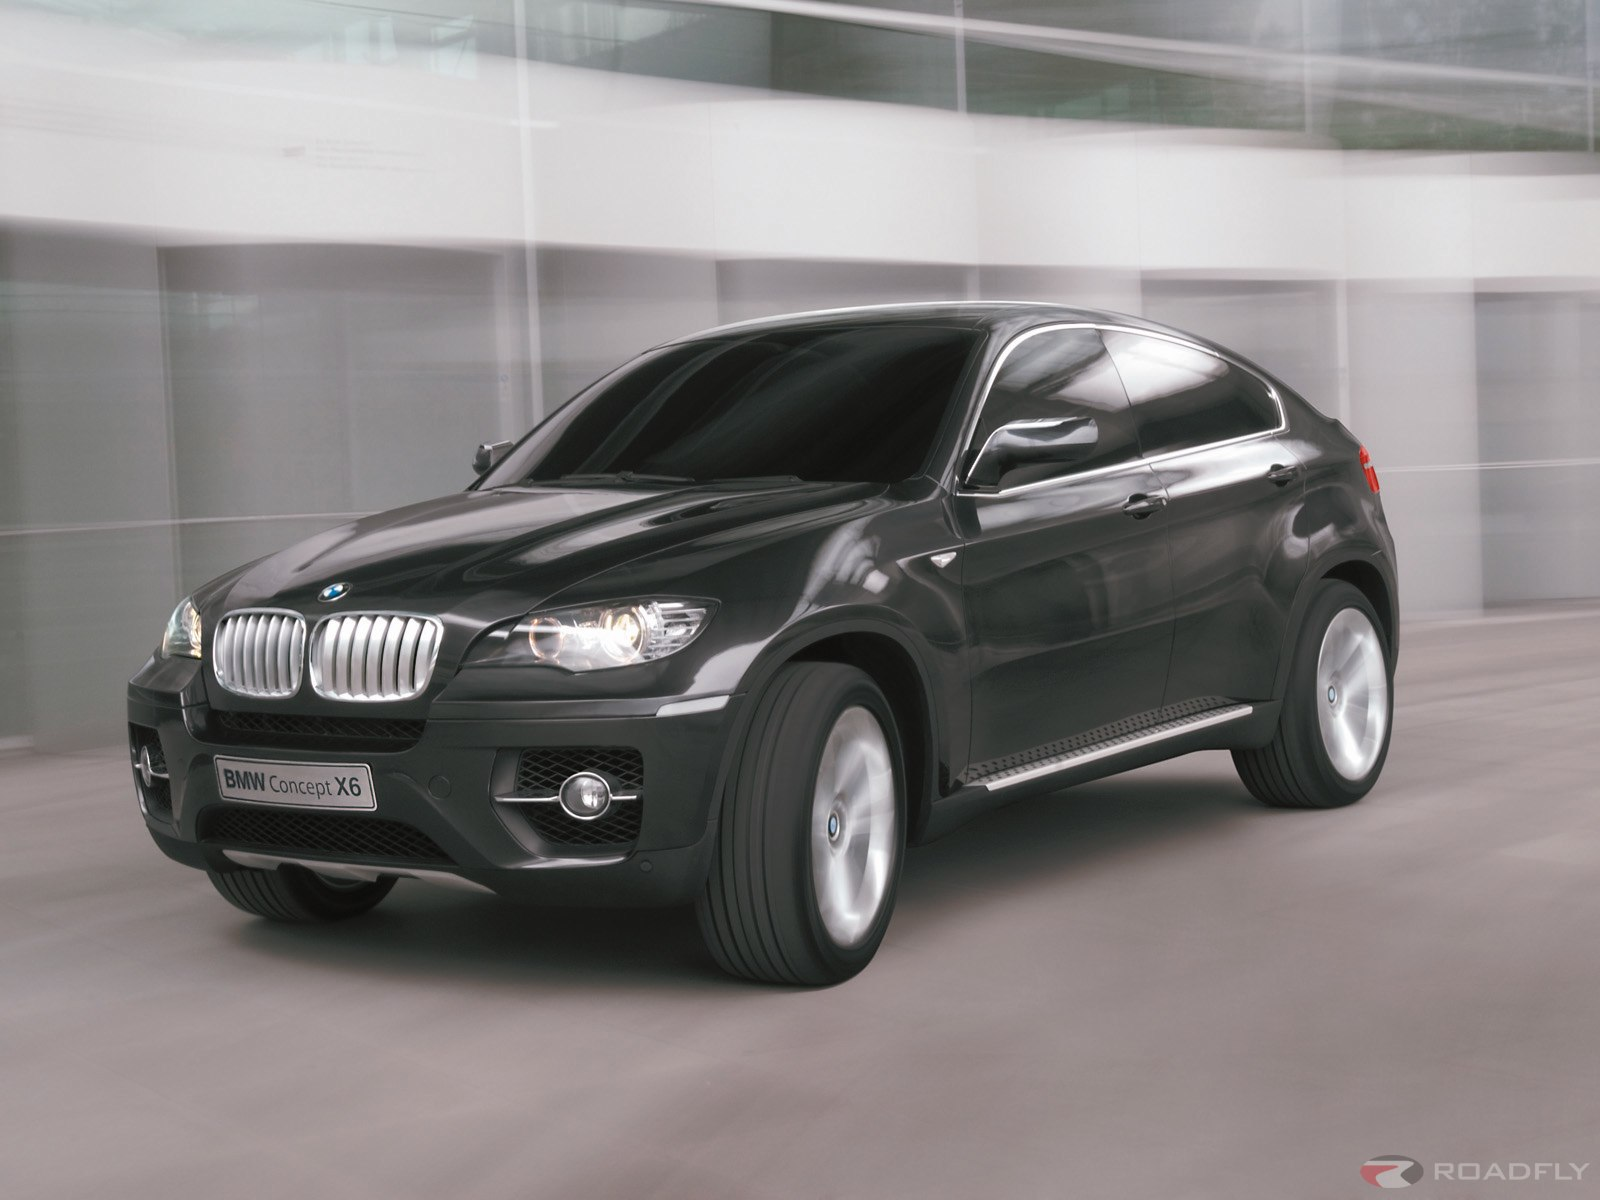 cars photos wallpapers bmw x6 photos and wallpapers. Black Bedroom Furniture Sets. Home Design Ideas